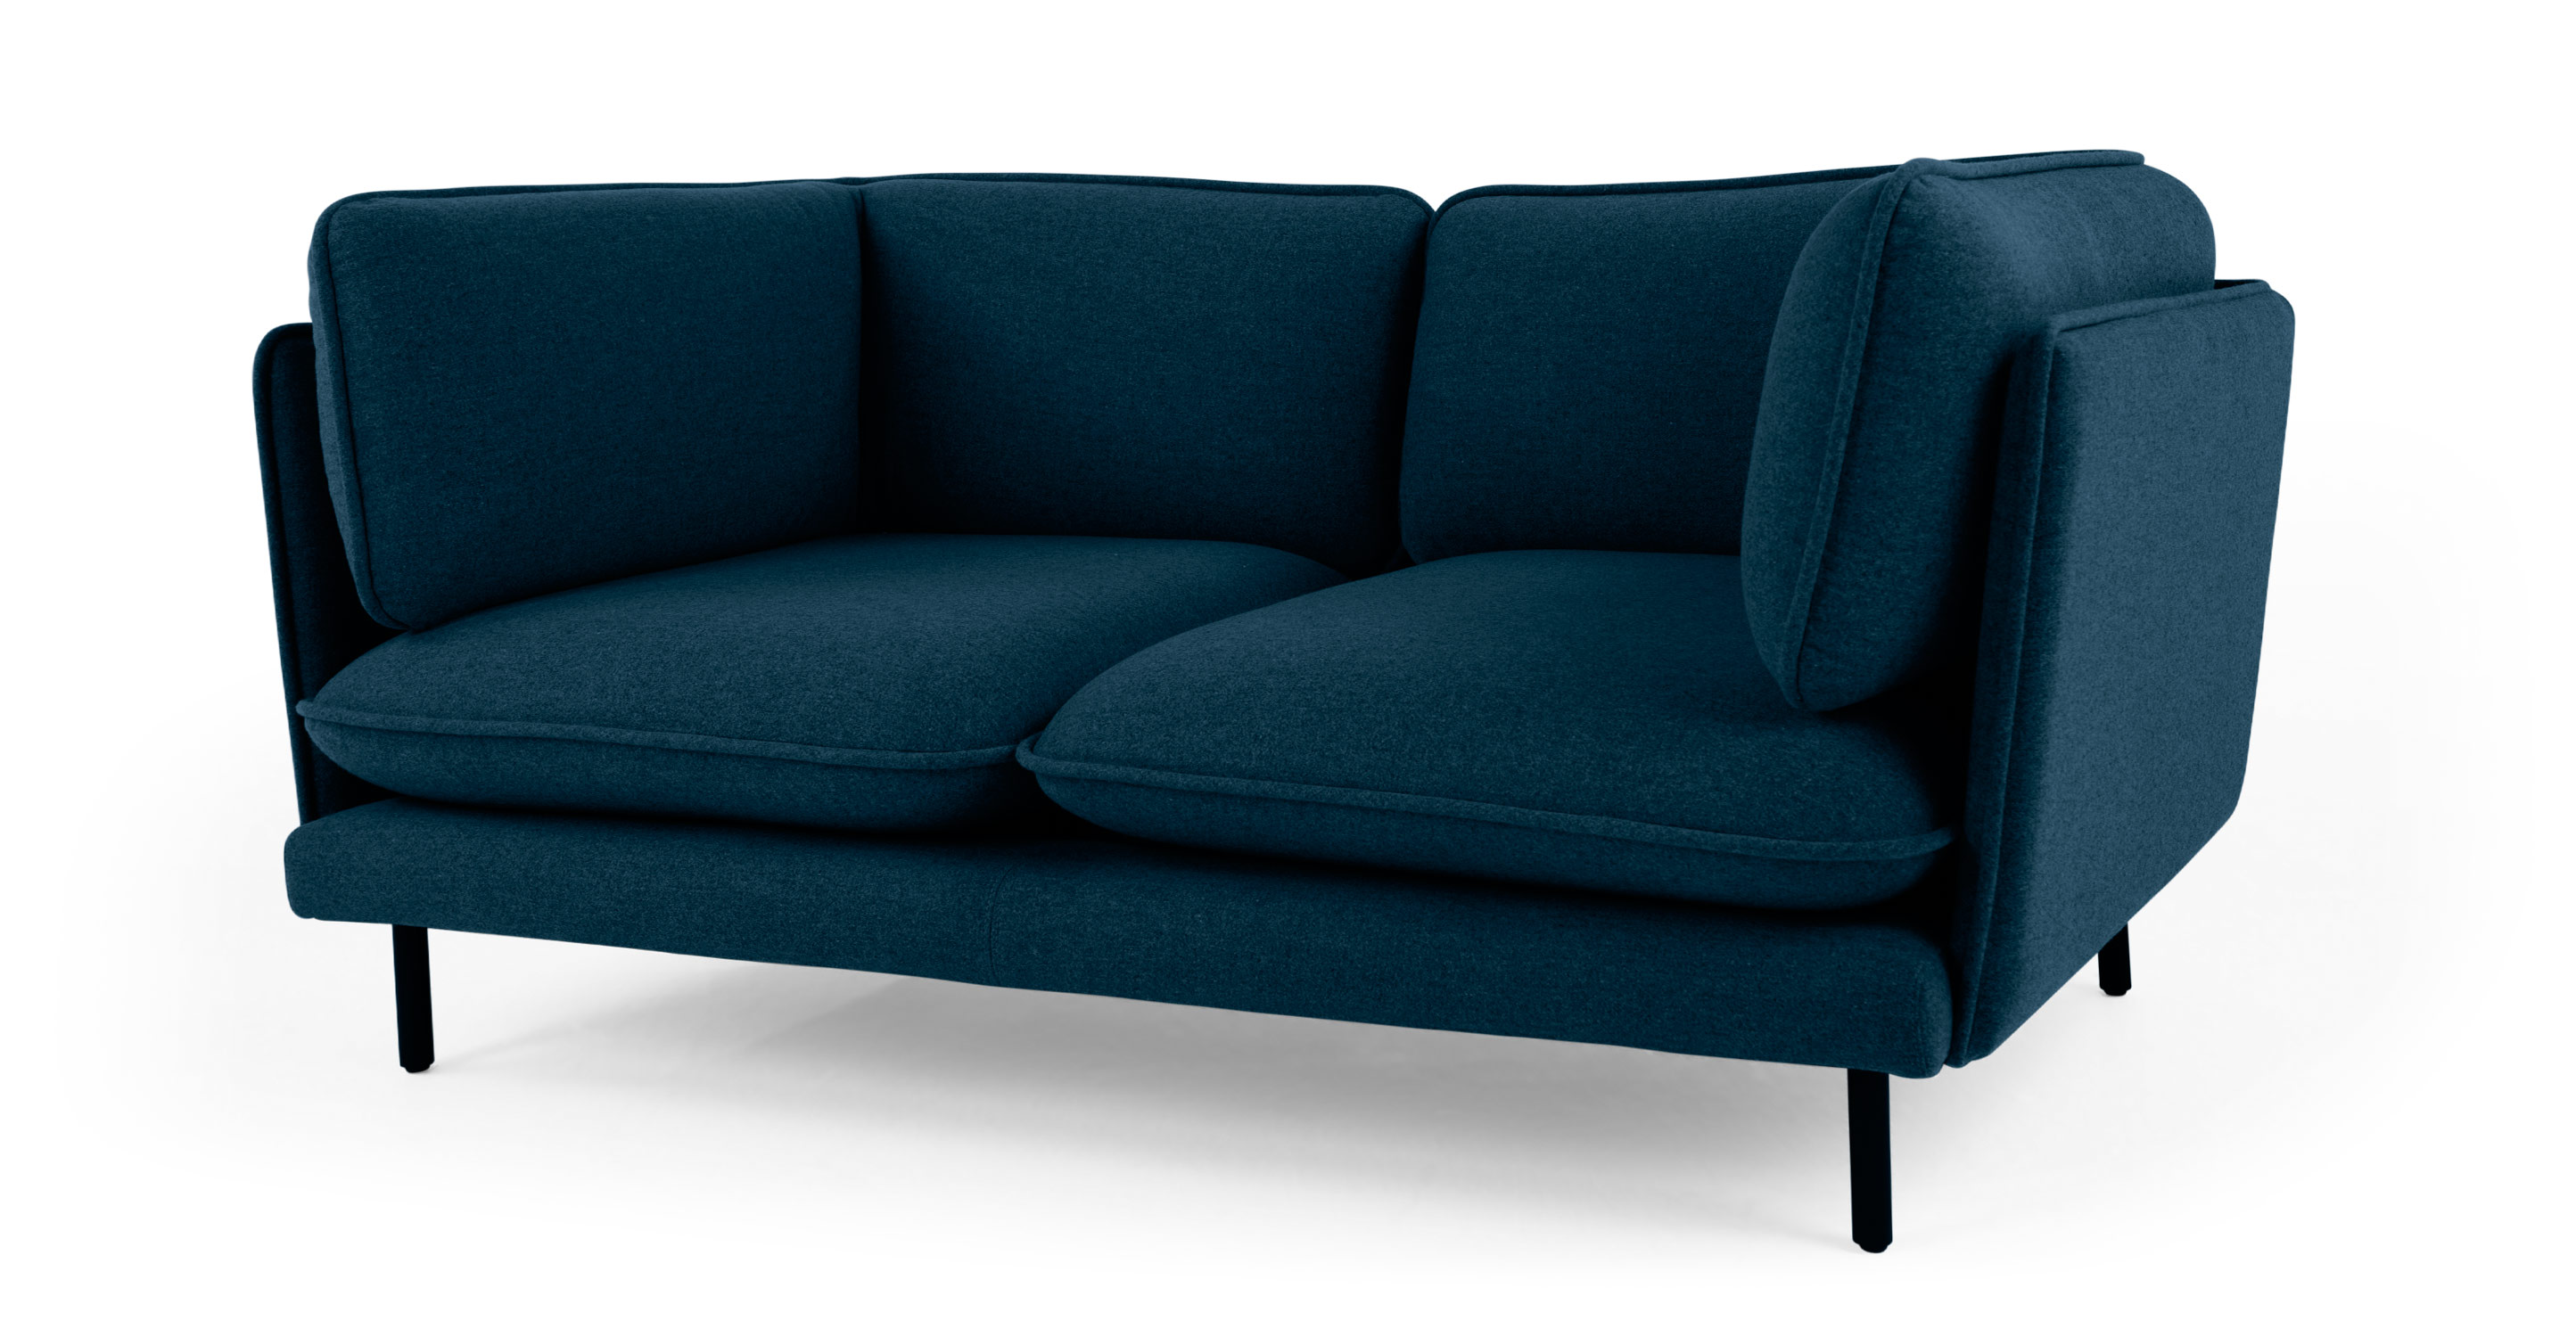 Wes 2 seater sofa petrol teal for Bedroom 2 seater sofa